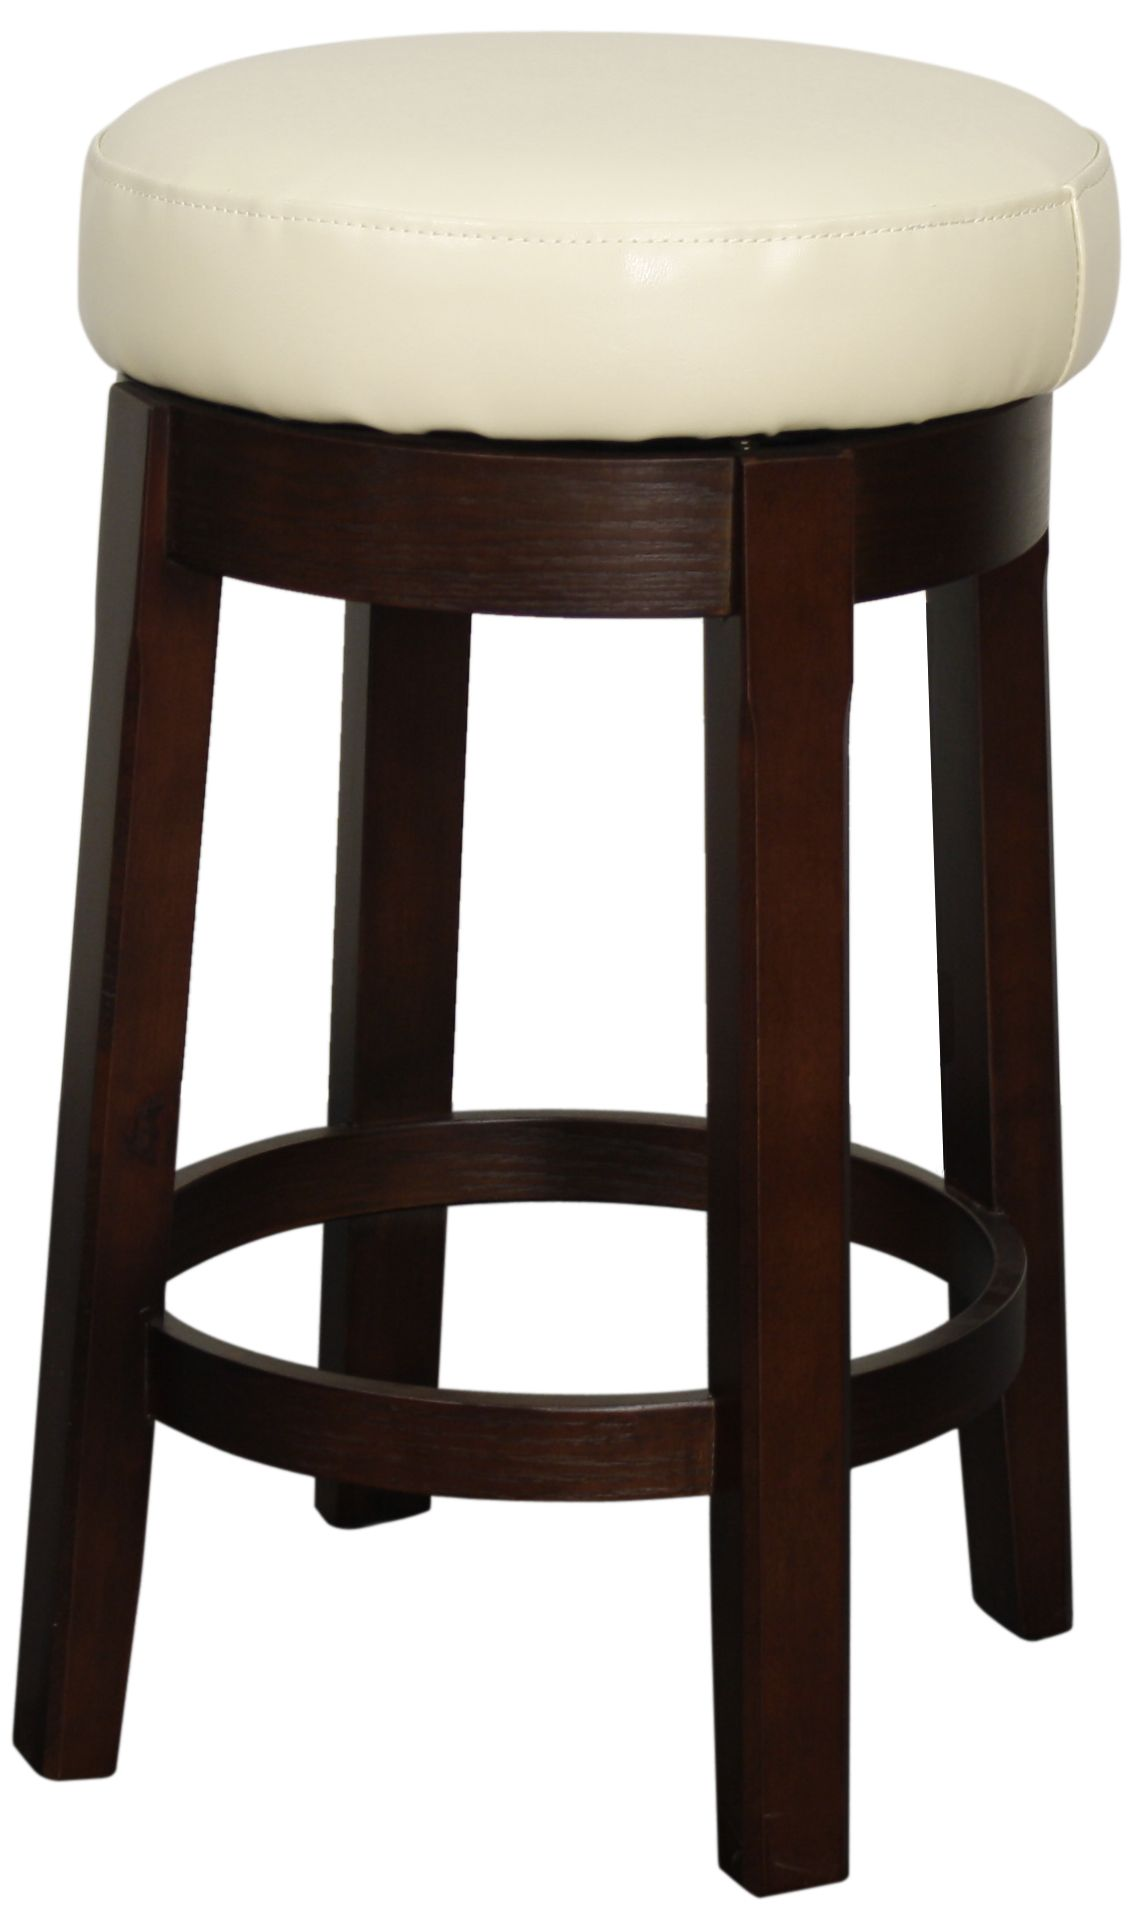 Marvelous Camden Bonded Leather Swivel Counter Stool 16 X 16 X 26 5 Unemploymentrelief Wooden Chair Designs For Living Room Unemploymentrelieforg